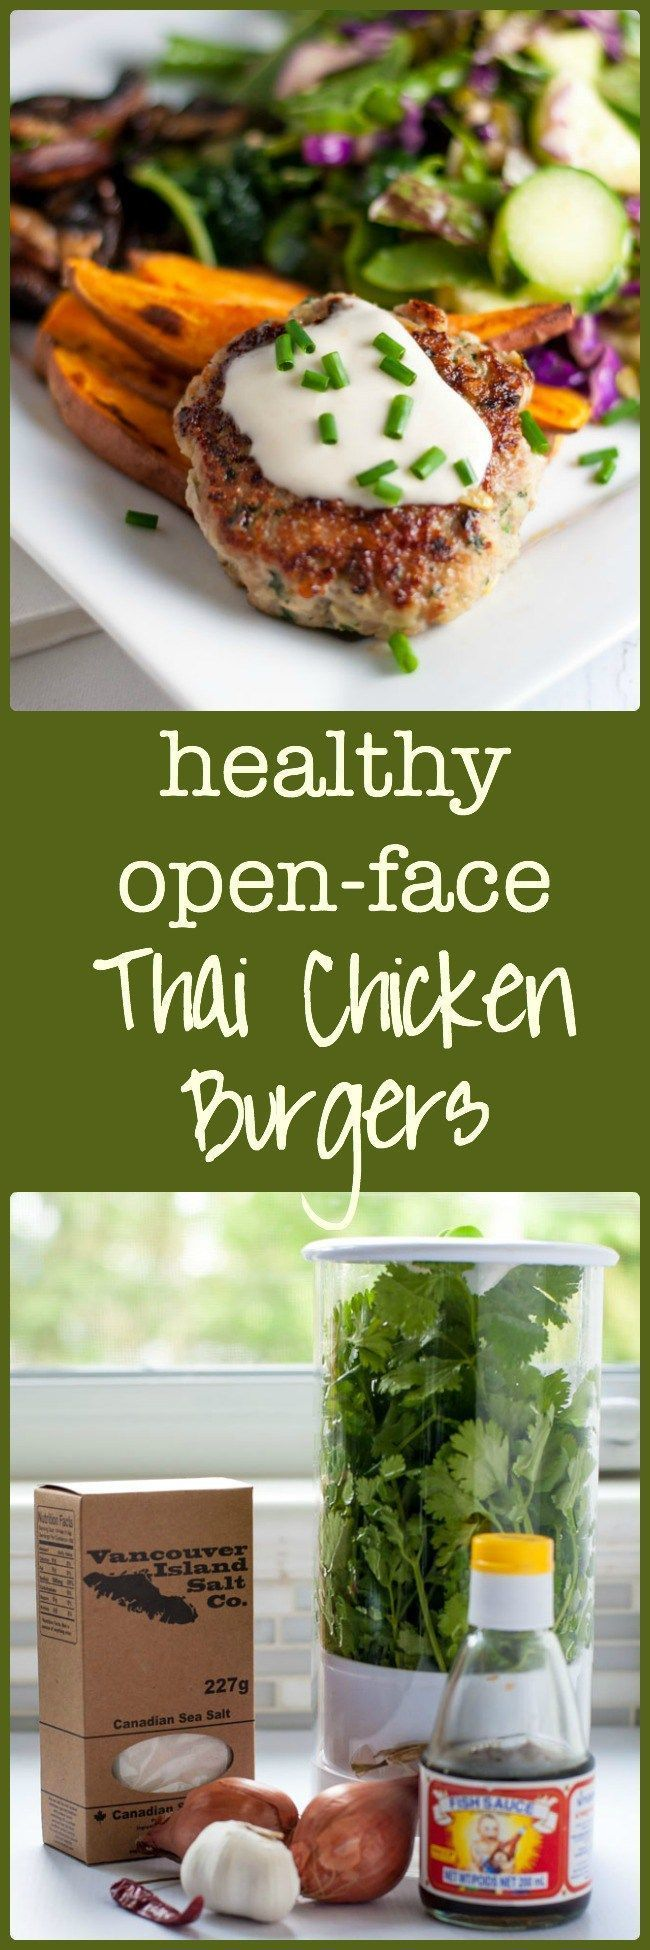 ... open-face burger with a side salad to make a paleo and gluten-free